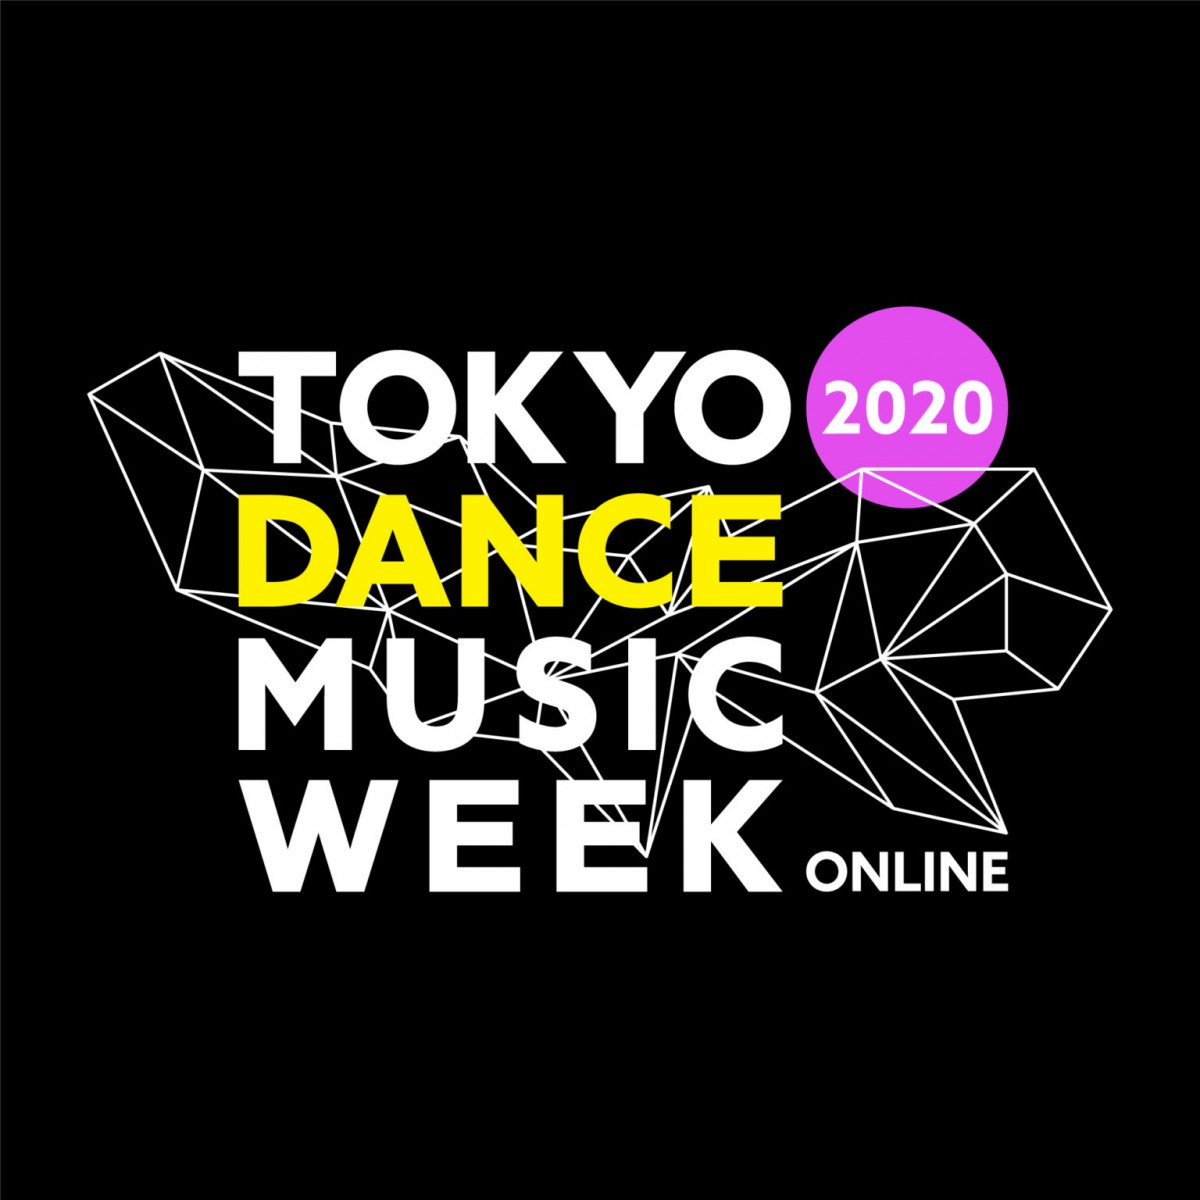 See you in 2021 !!!【TOKYO DANCE MUSIC WEEK2020】ありがとうございました。